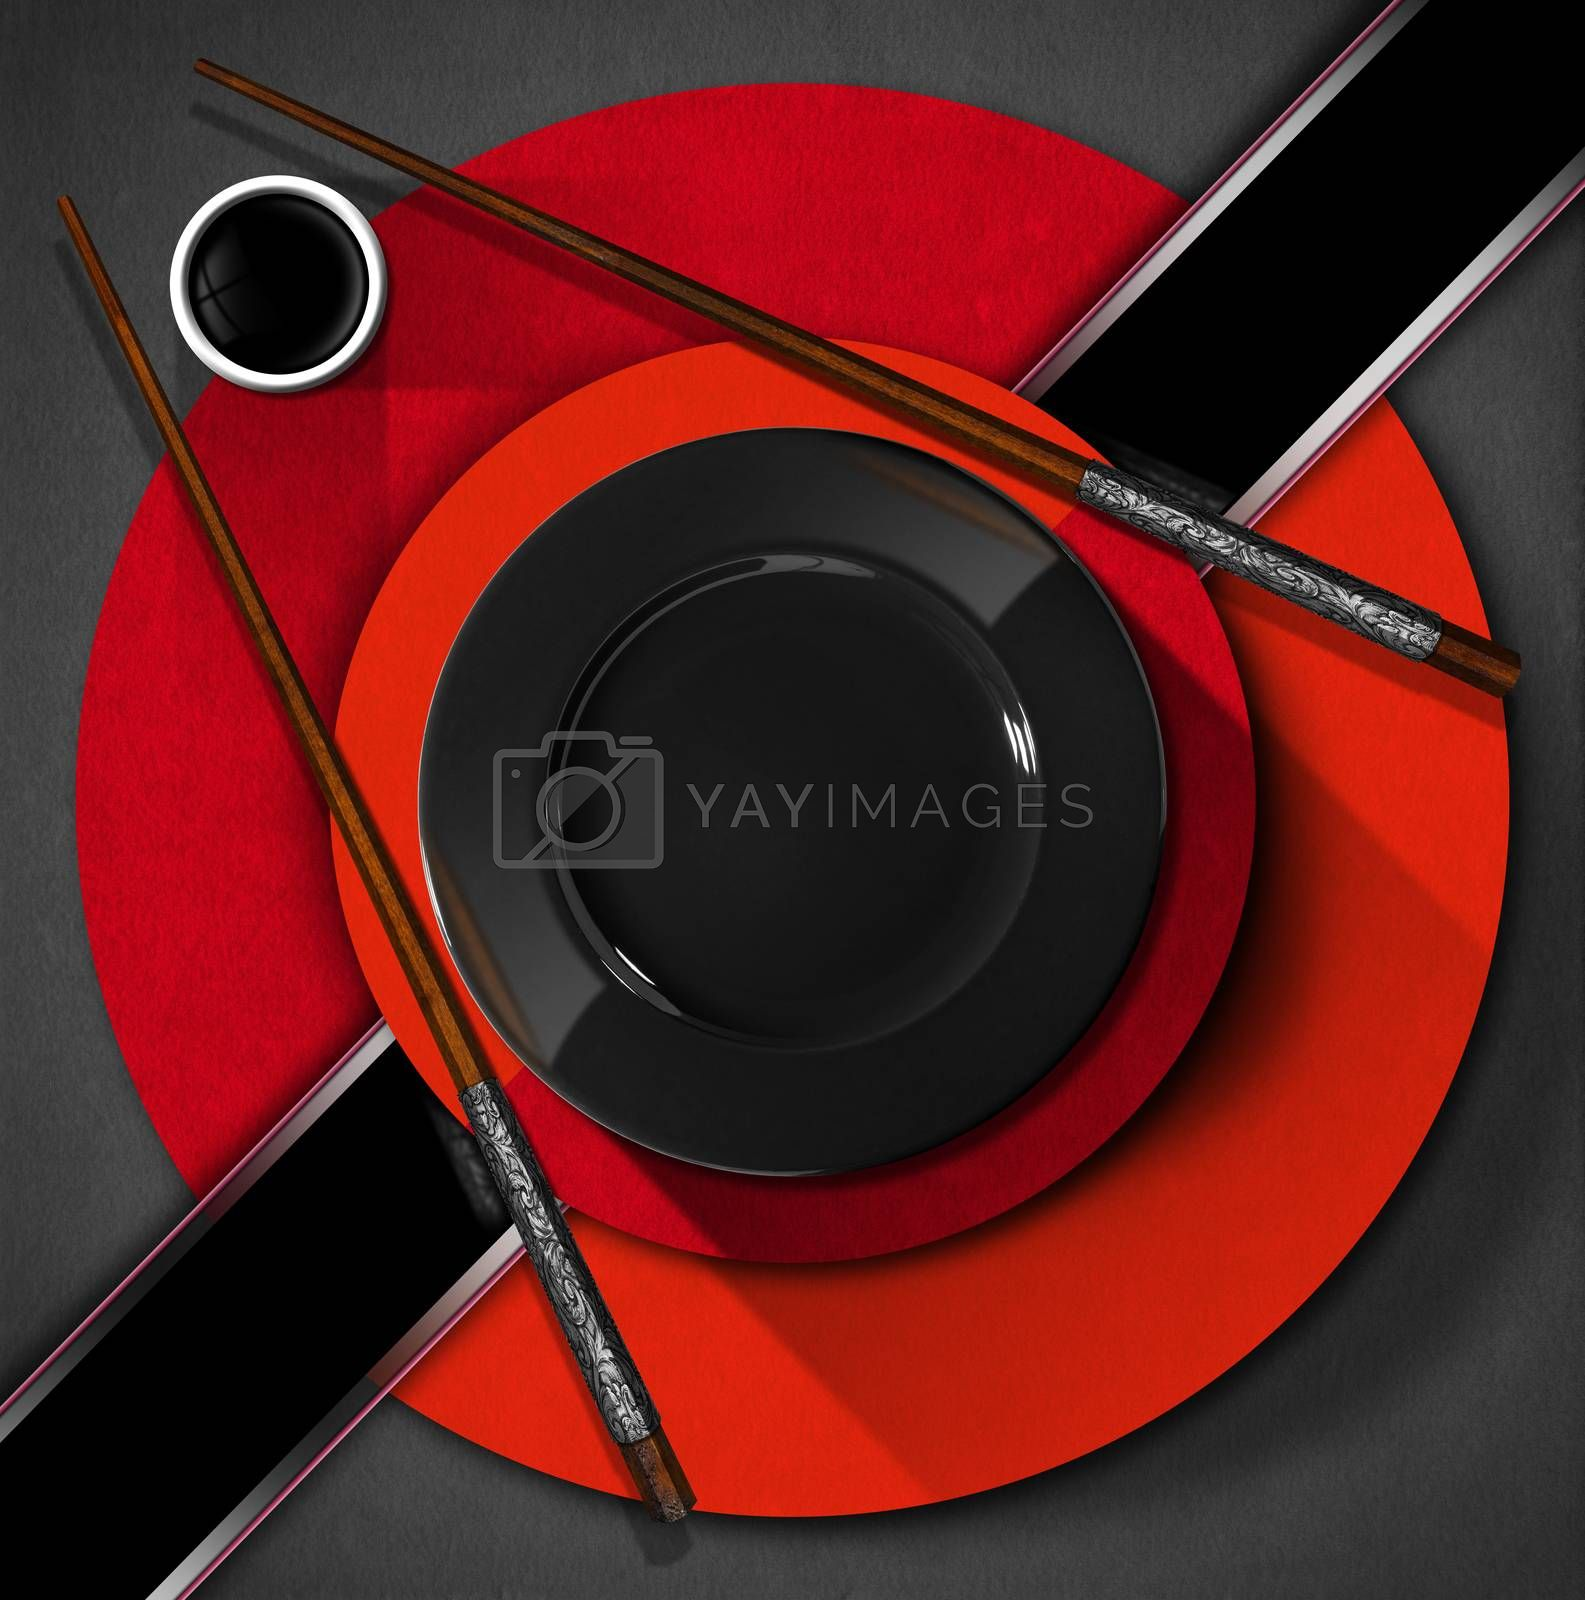 Template for an Asian menu with wooden and silver chopsticks, black plate and a bowl of sauce. On a red, black and grey background